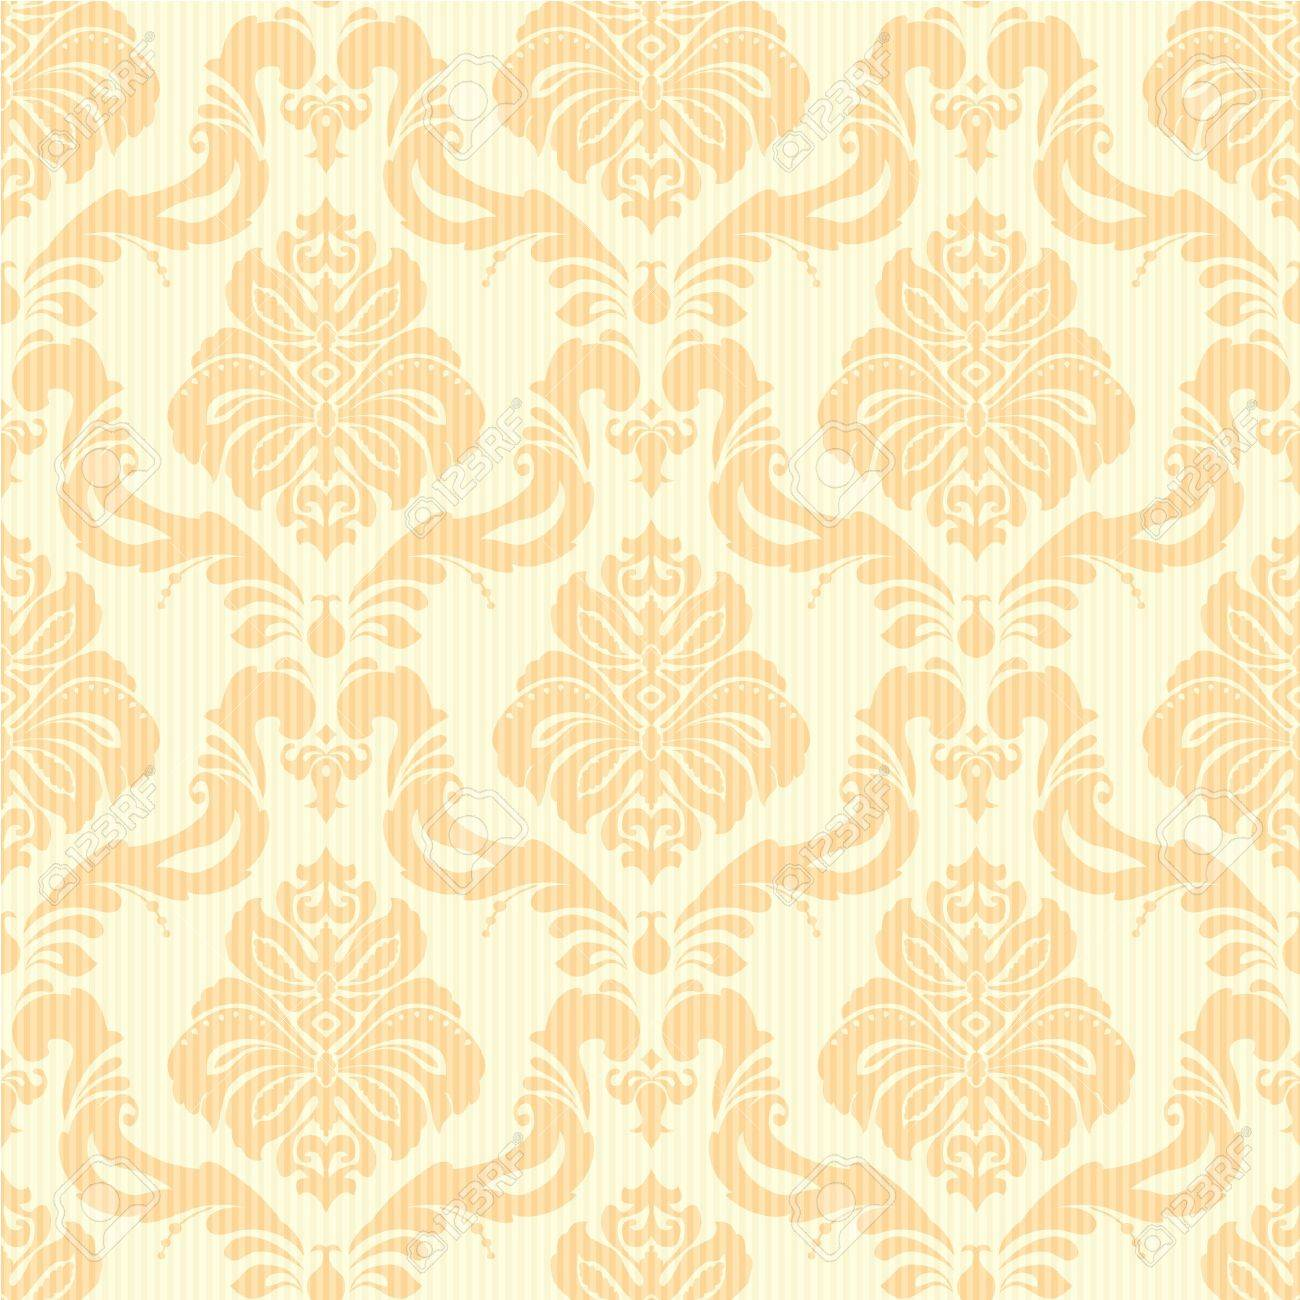 Classic Damask Floral Seamless Wallpaper In Light Orange And